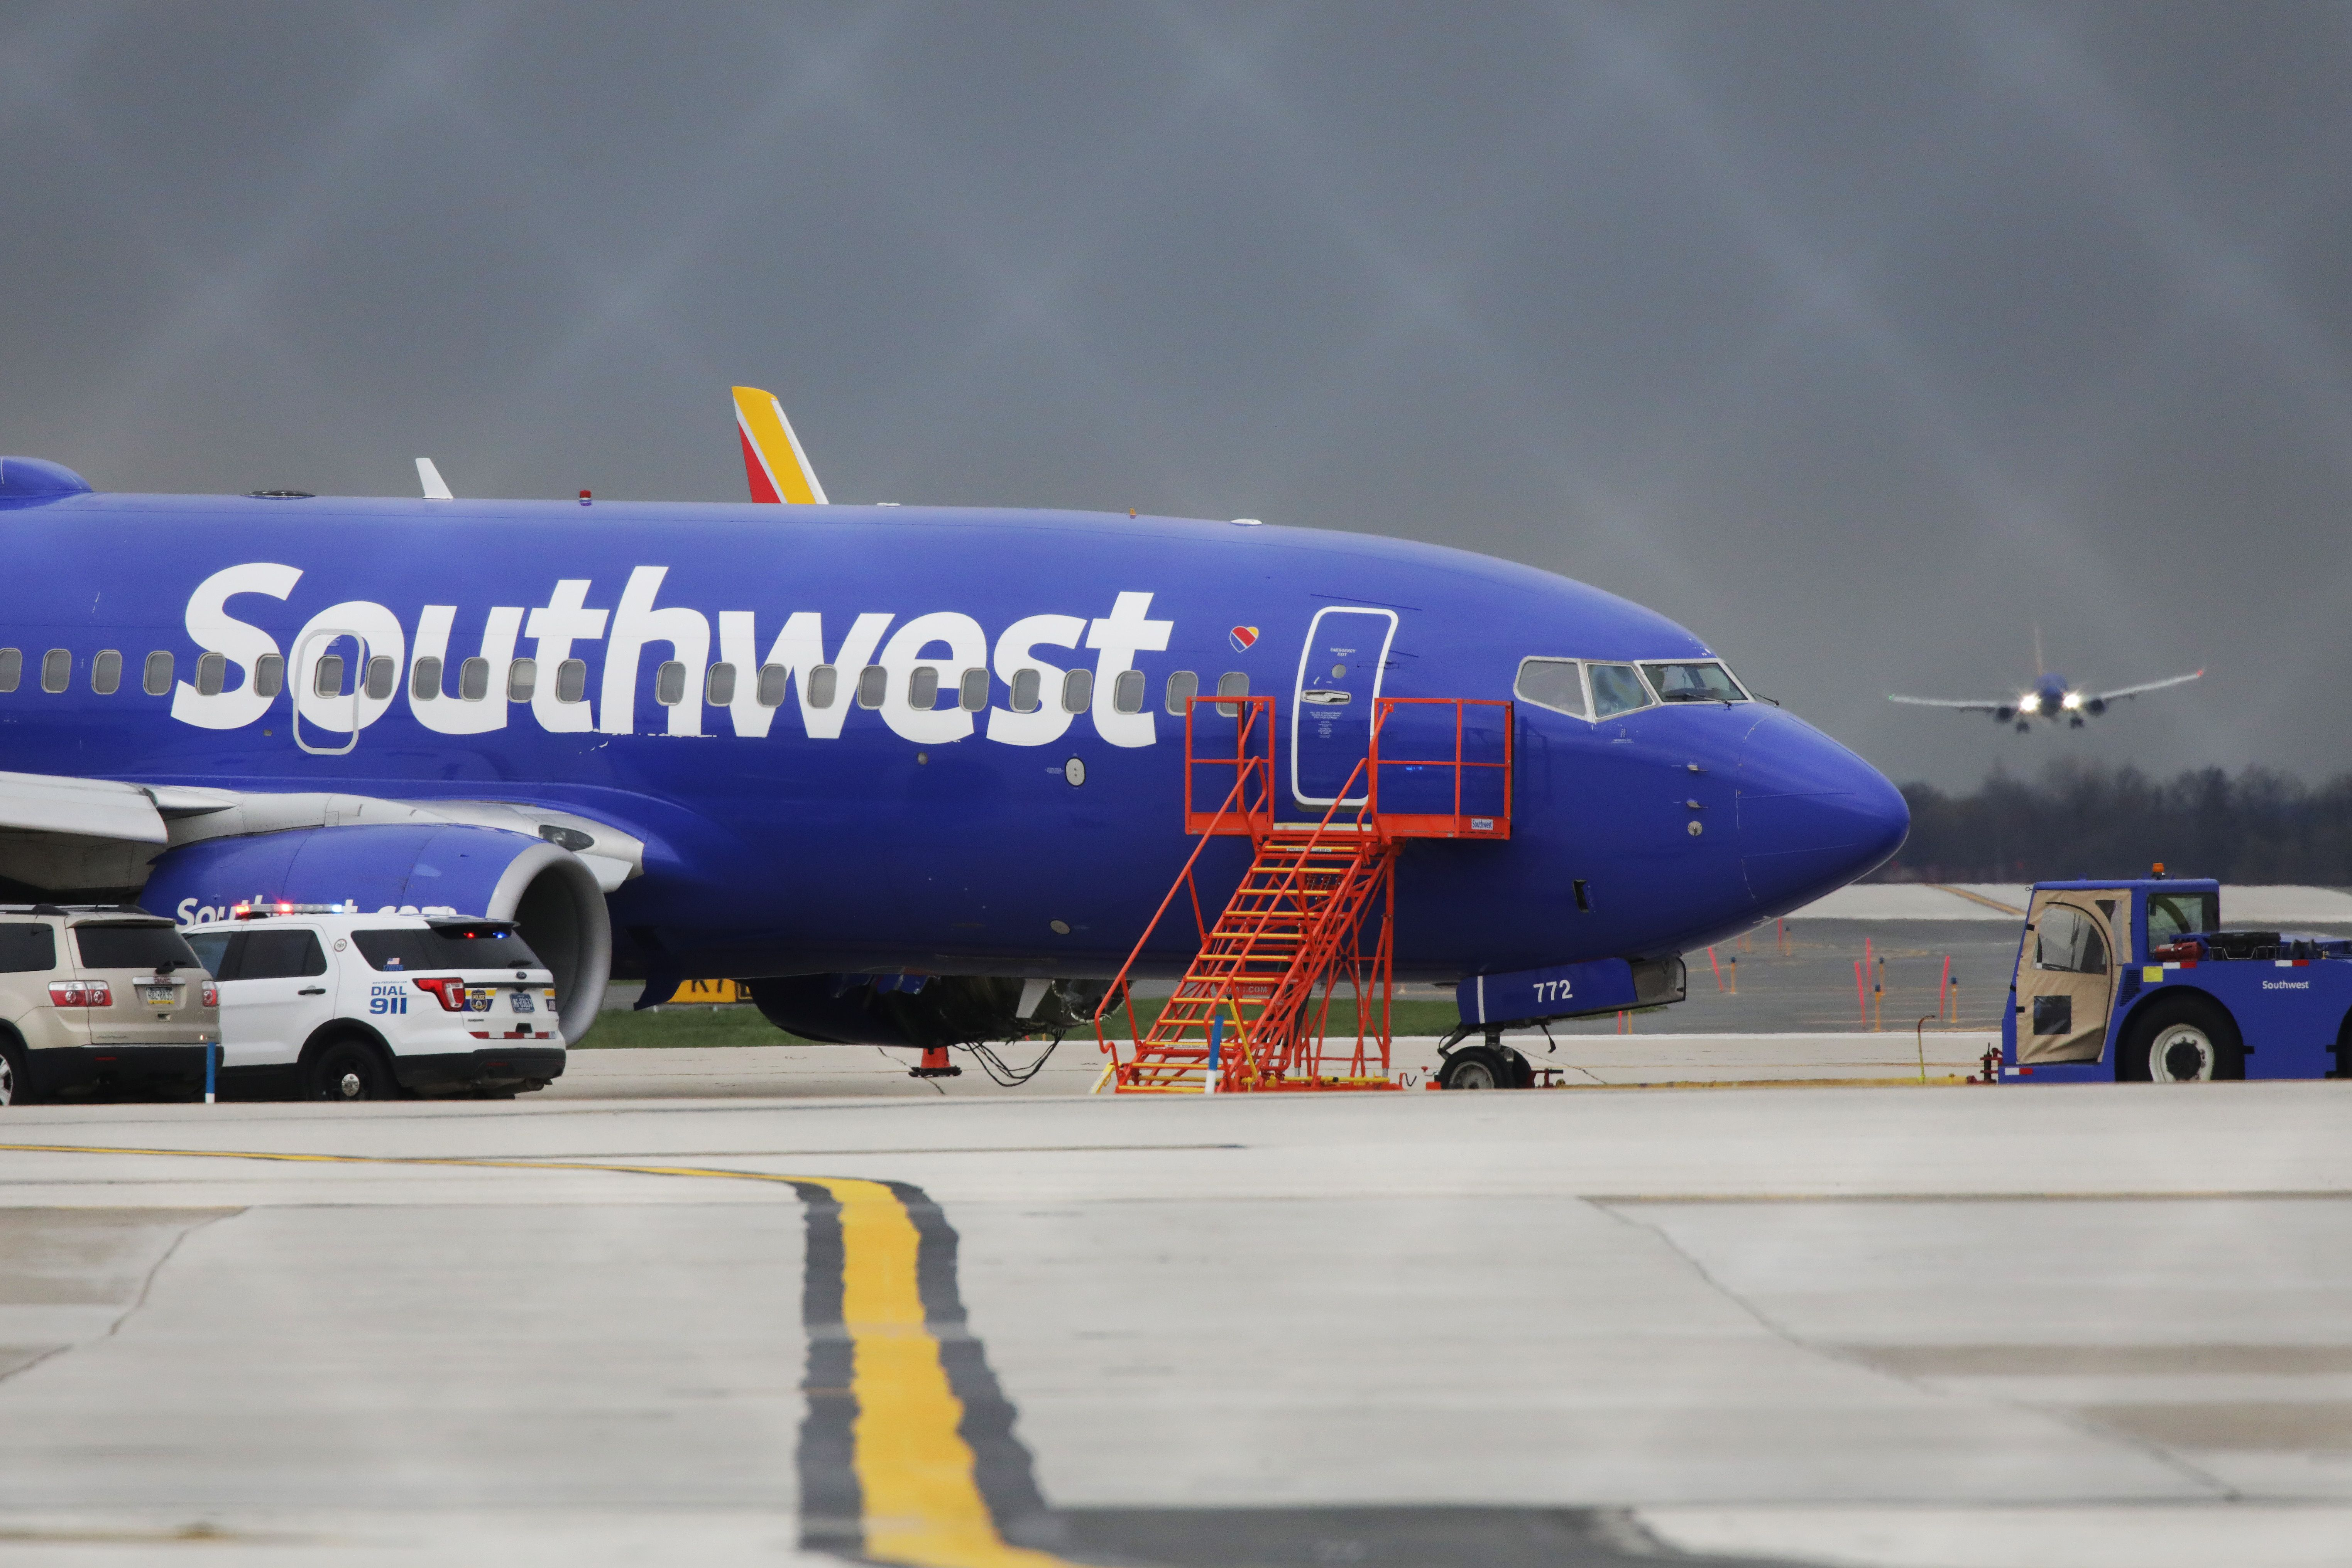 A Southwest Airlines jet sits on the runway at Philadelphia International Airport on April 17, 2018.